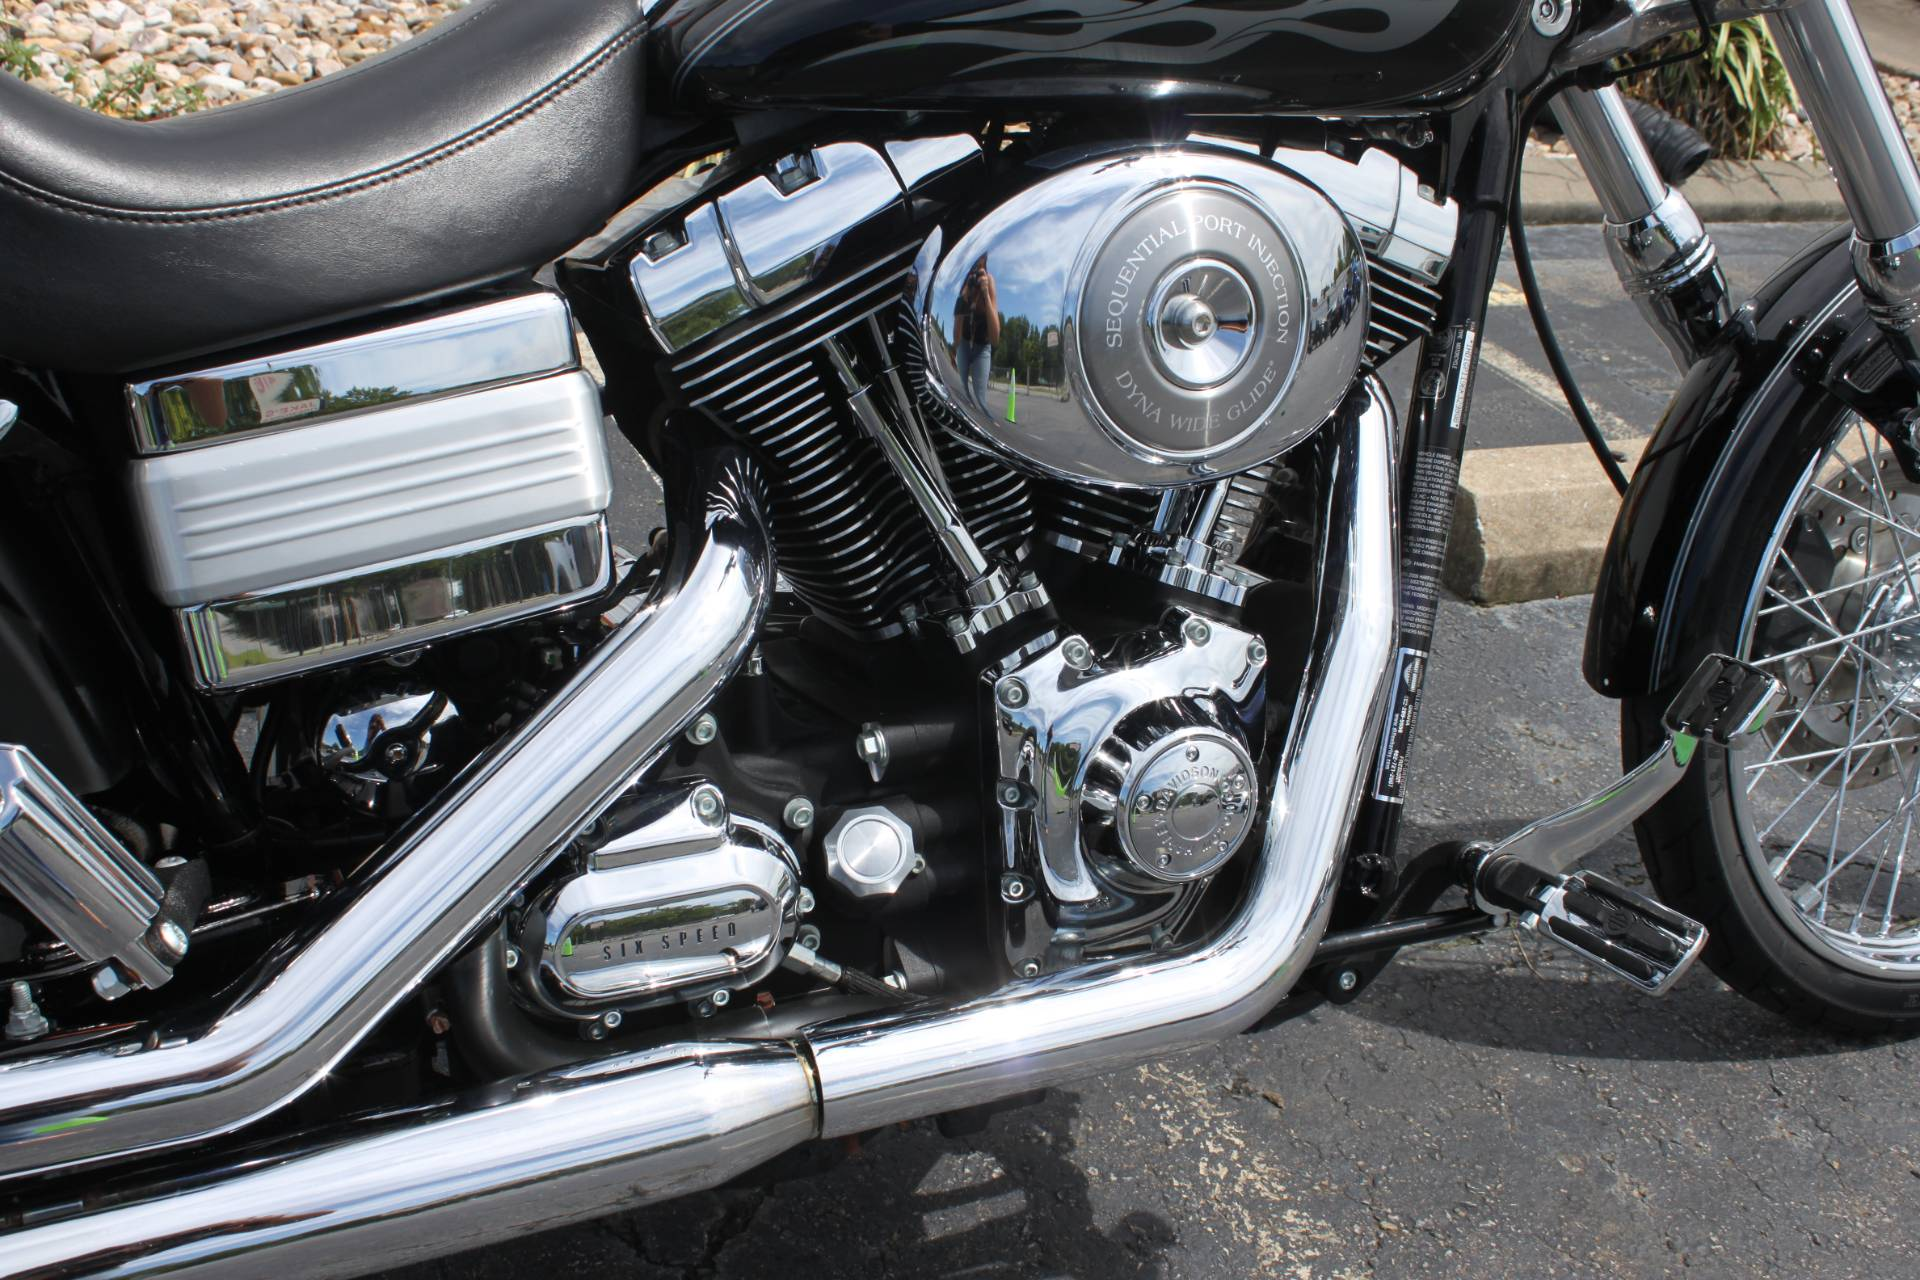 2006 Harley-Davidson FXDWG DYNA WIDE GLIDE in Greenbrier, Arkansas - Photo 5